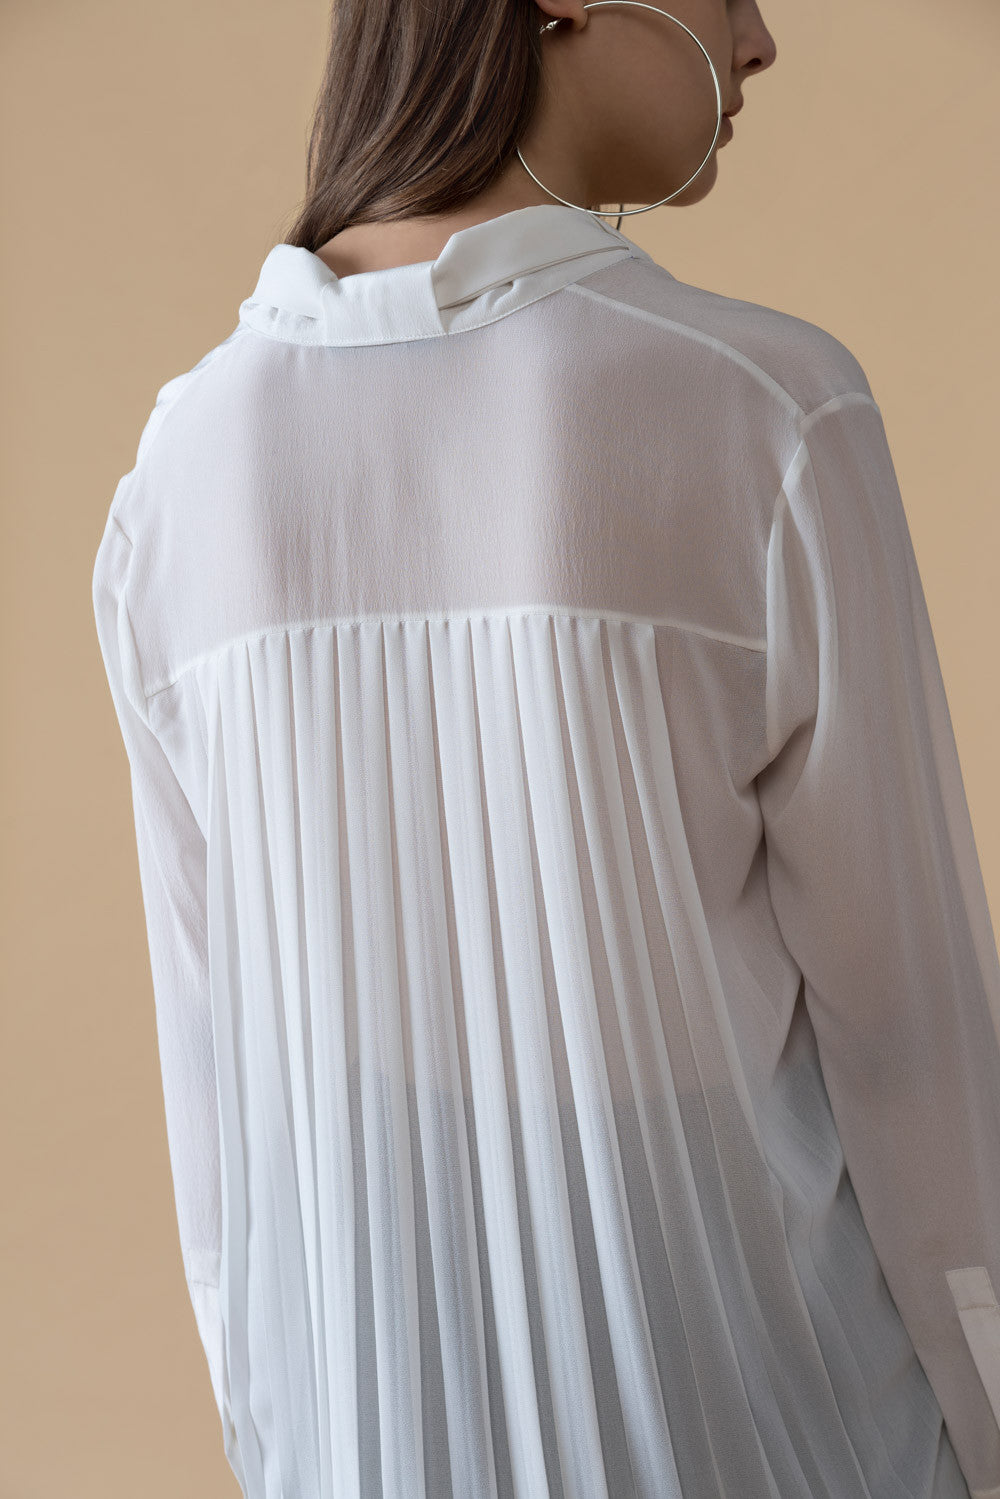 Pleated Back White Shirt